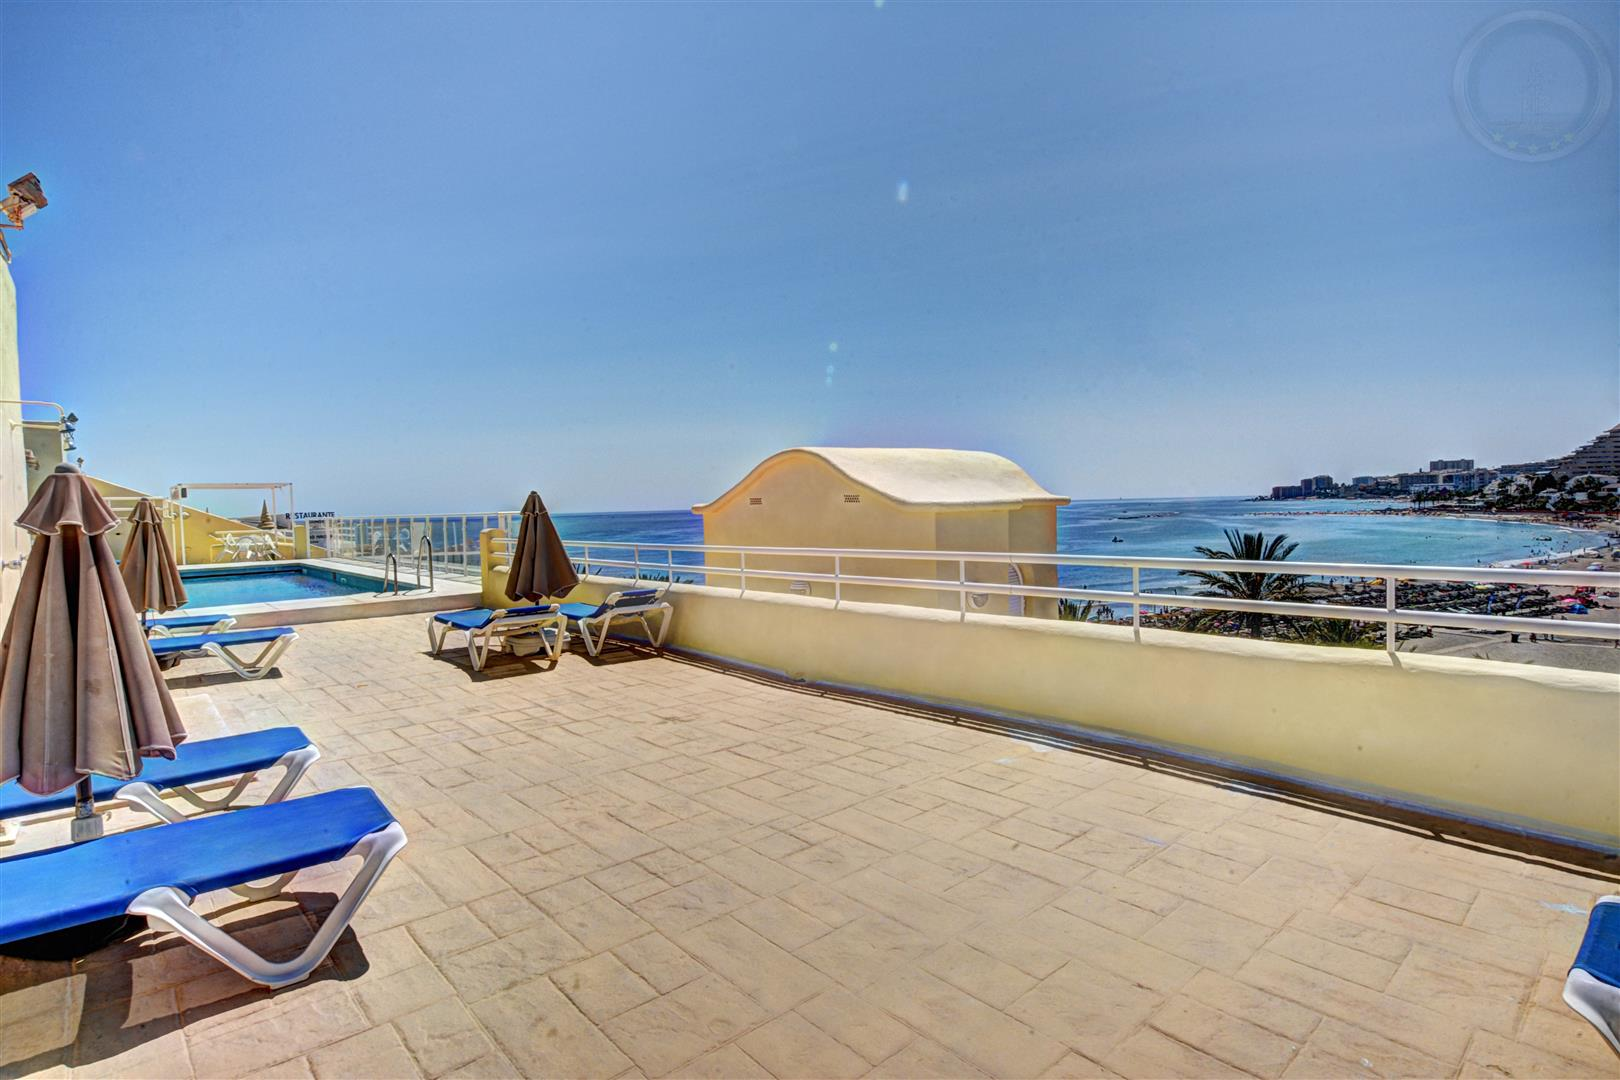 Penthouse apartment for Sale  in Benalmadena Costa Puertomarina 3